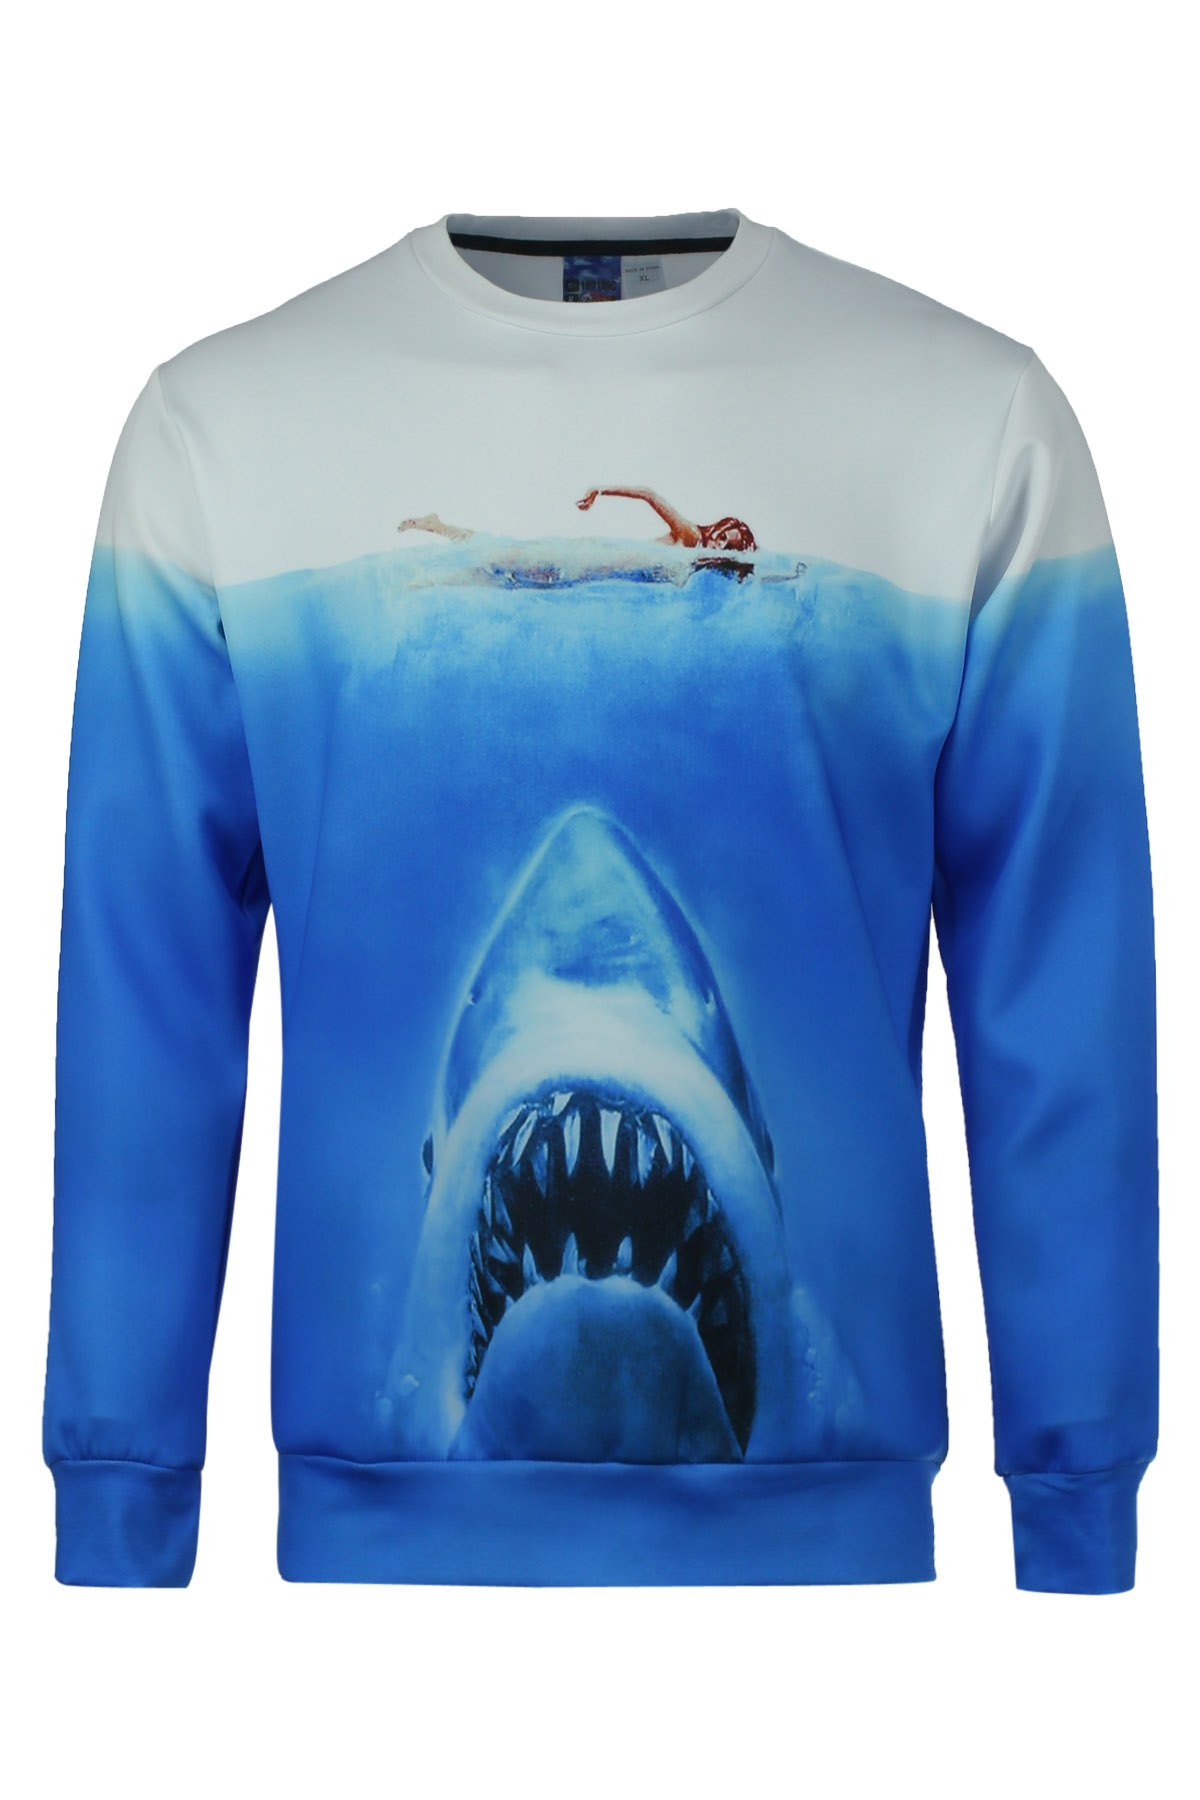 Fitted Fashion Round Neck 3D Shark Pattern Long Sleeve Men's Cotton Blend Sweatshirt - BLUE/WHITE M